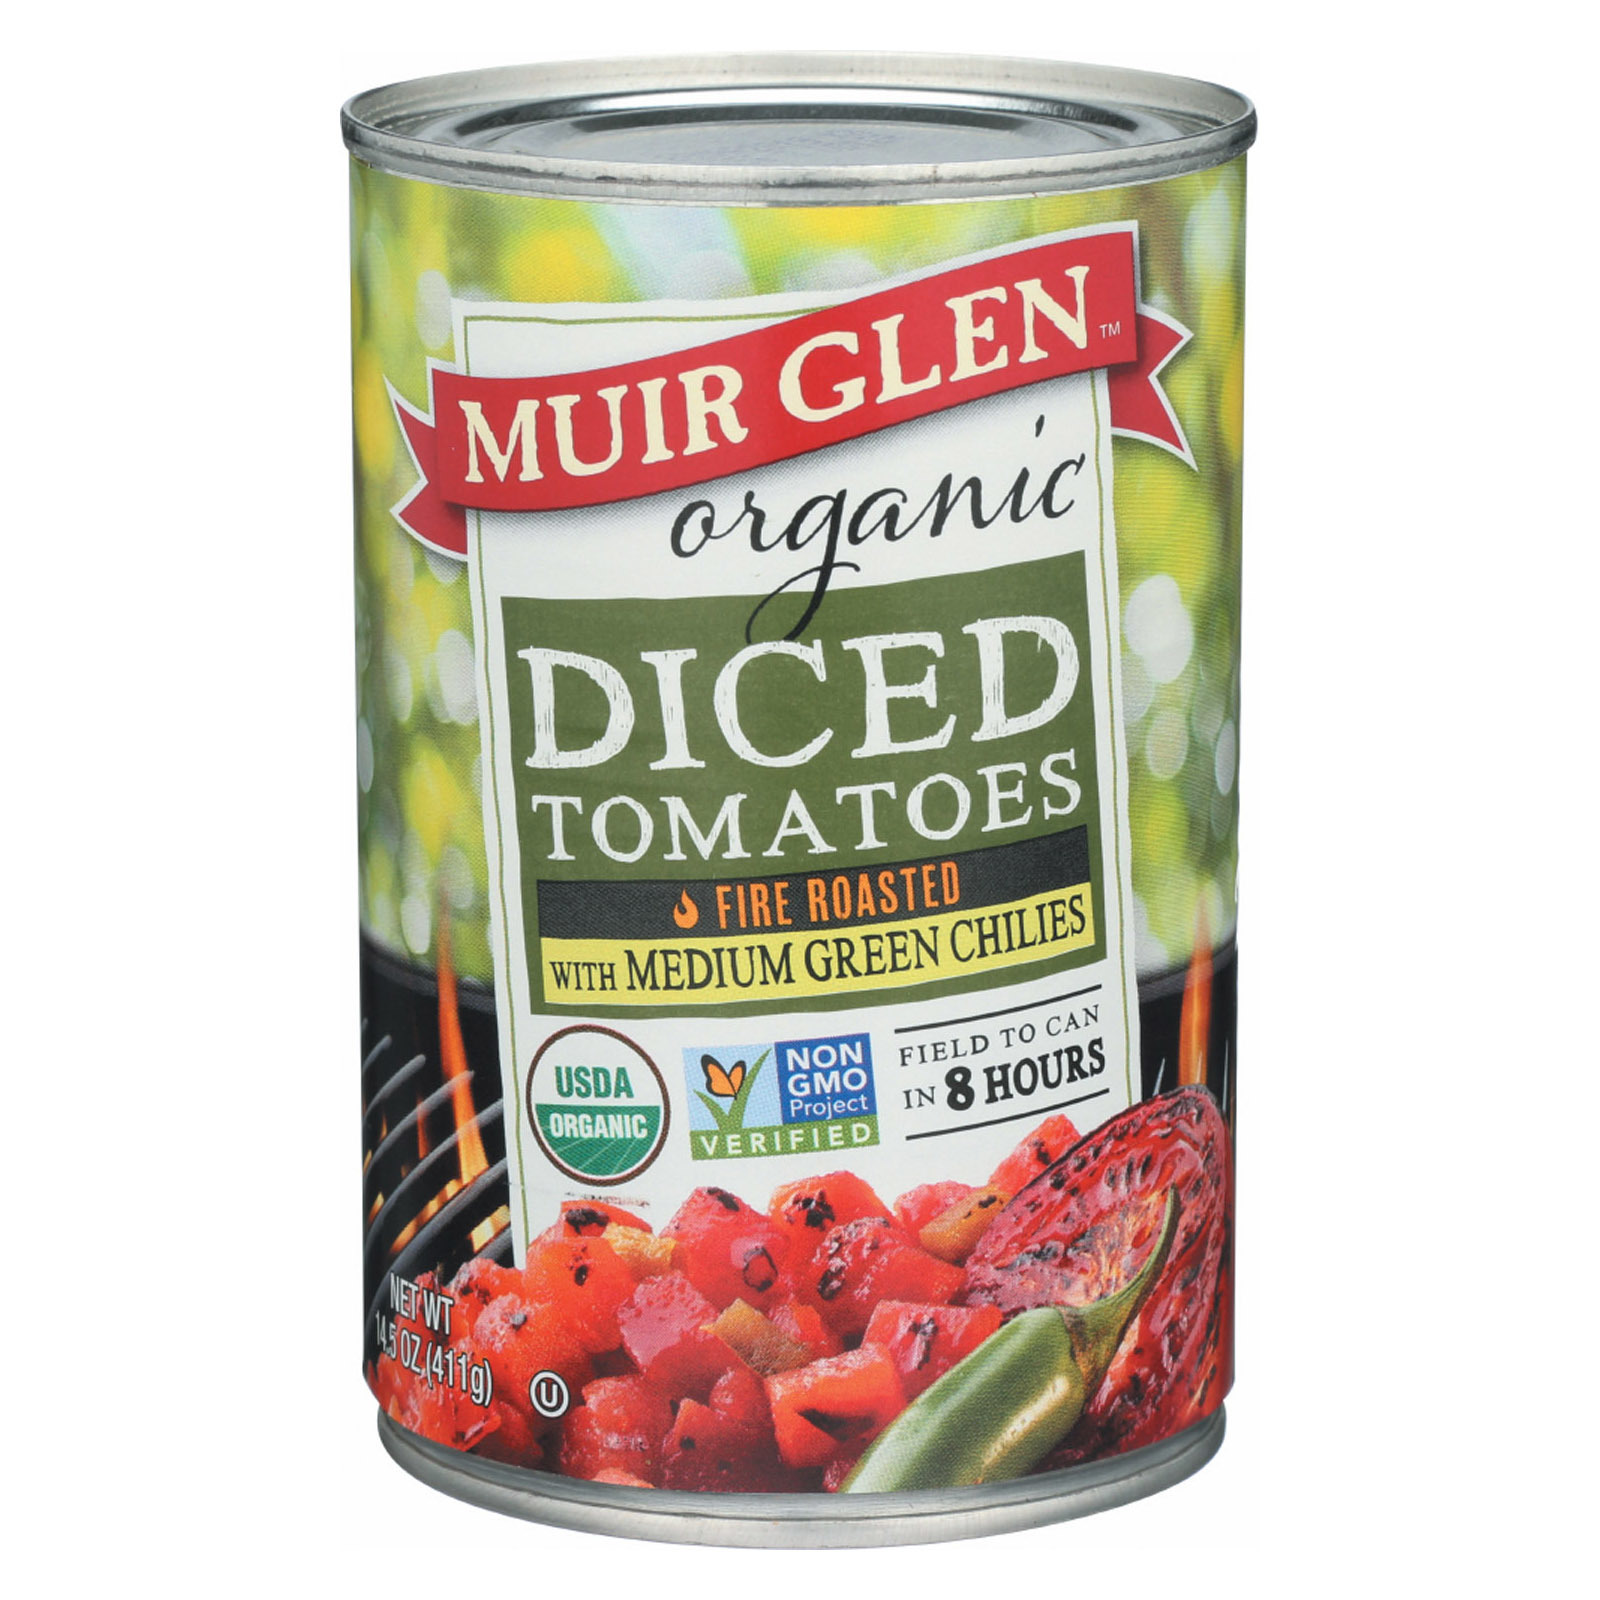 Muir Glen Fire Roasted Diced Tomatoes with Green Chilies - Green Chilies - Case of 12 - 14.5 oz.